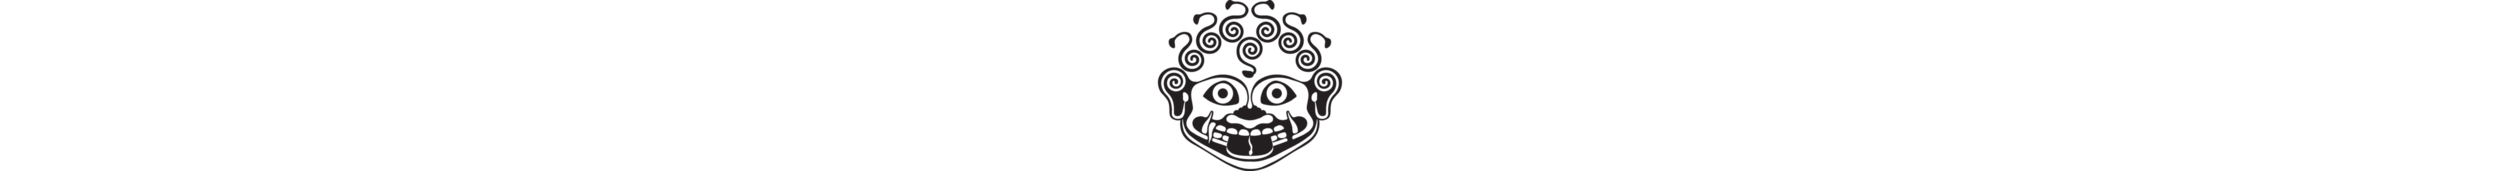 grinning+Medusa very small.png